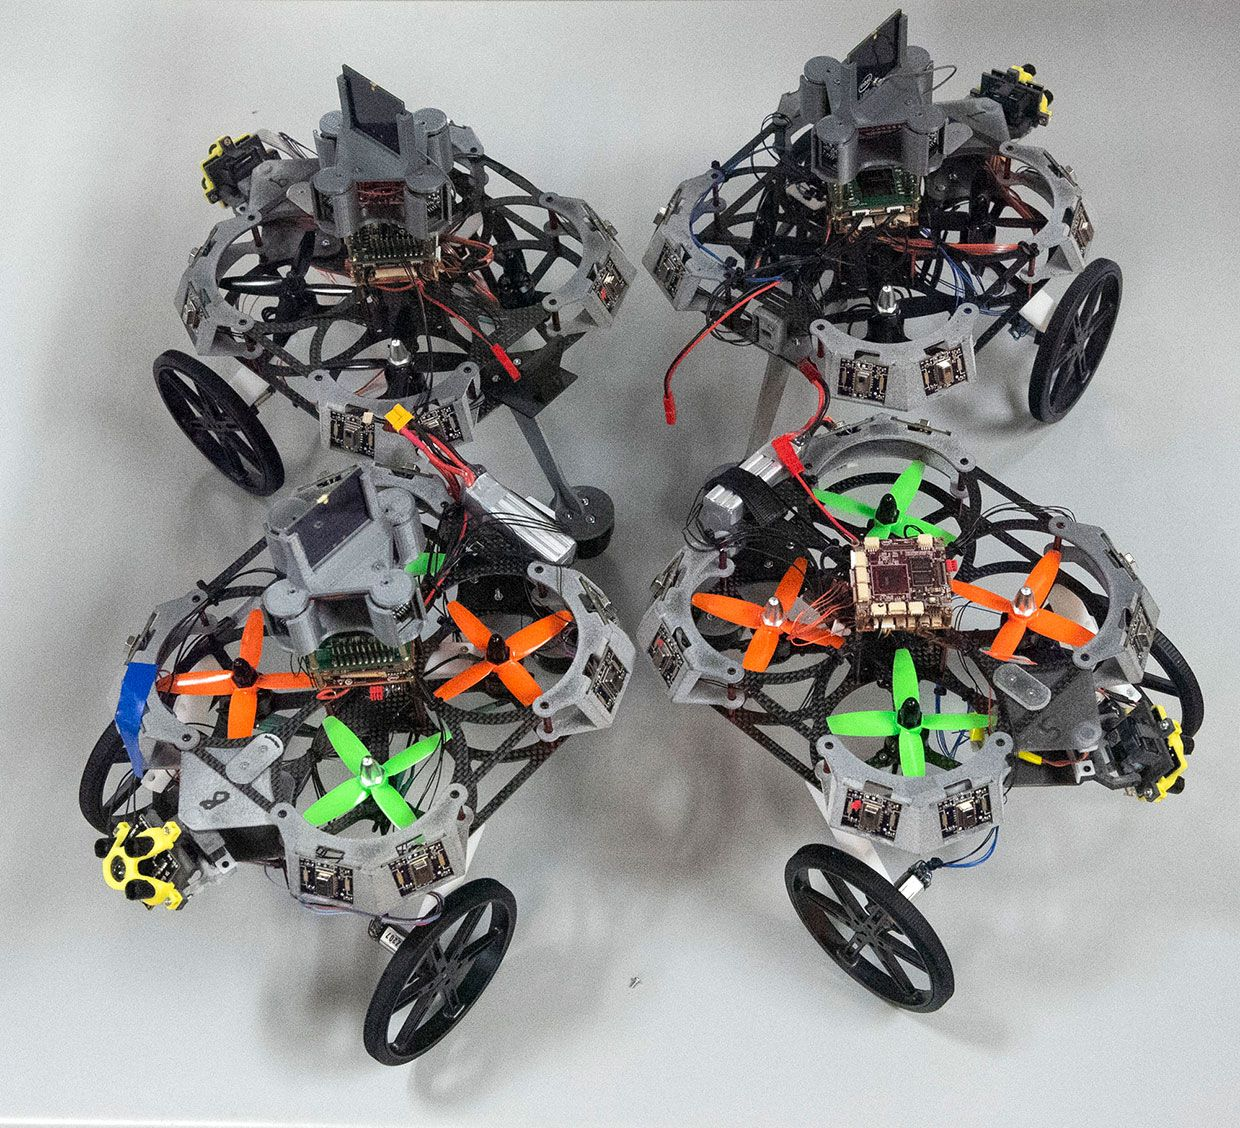 Intel mobile robots with SoC path planning system